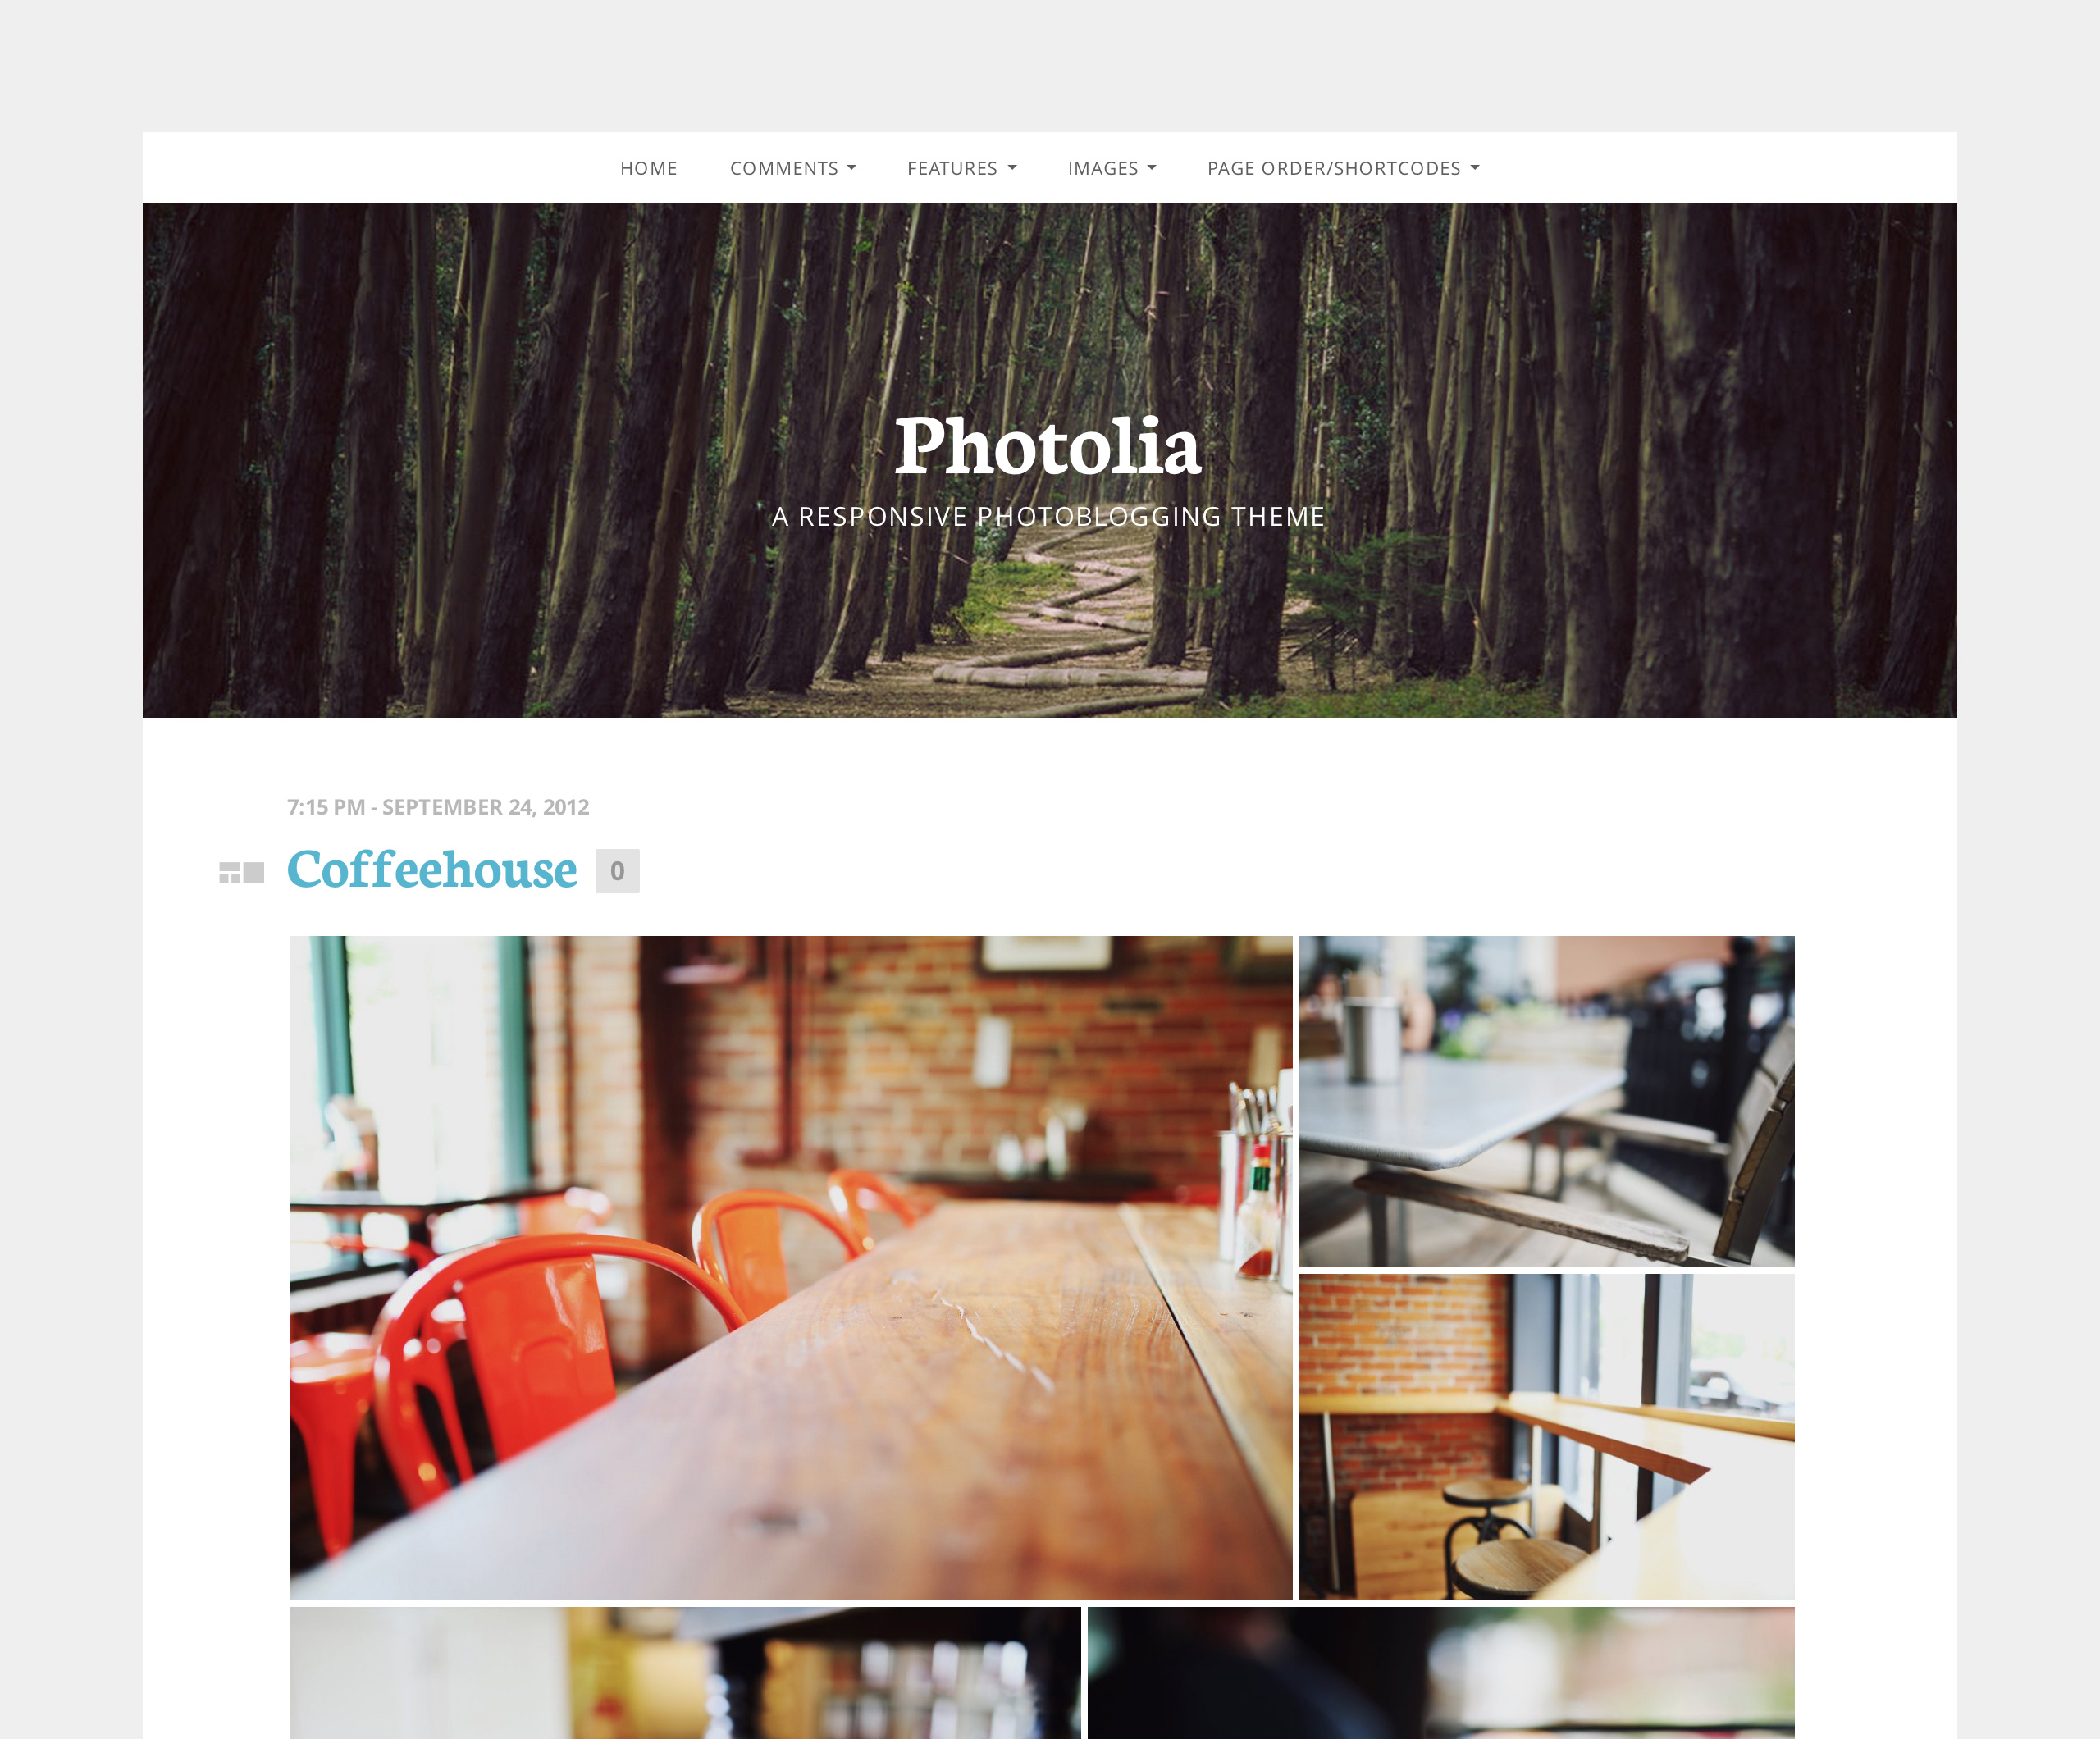 Screenshot of the Photolia theme